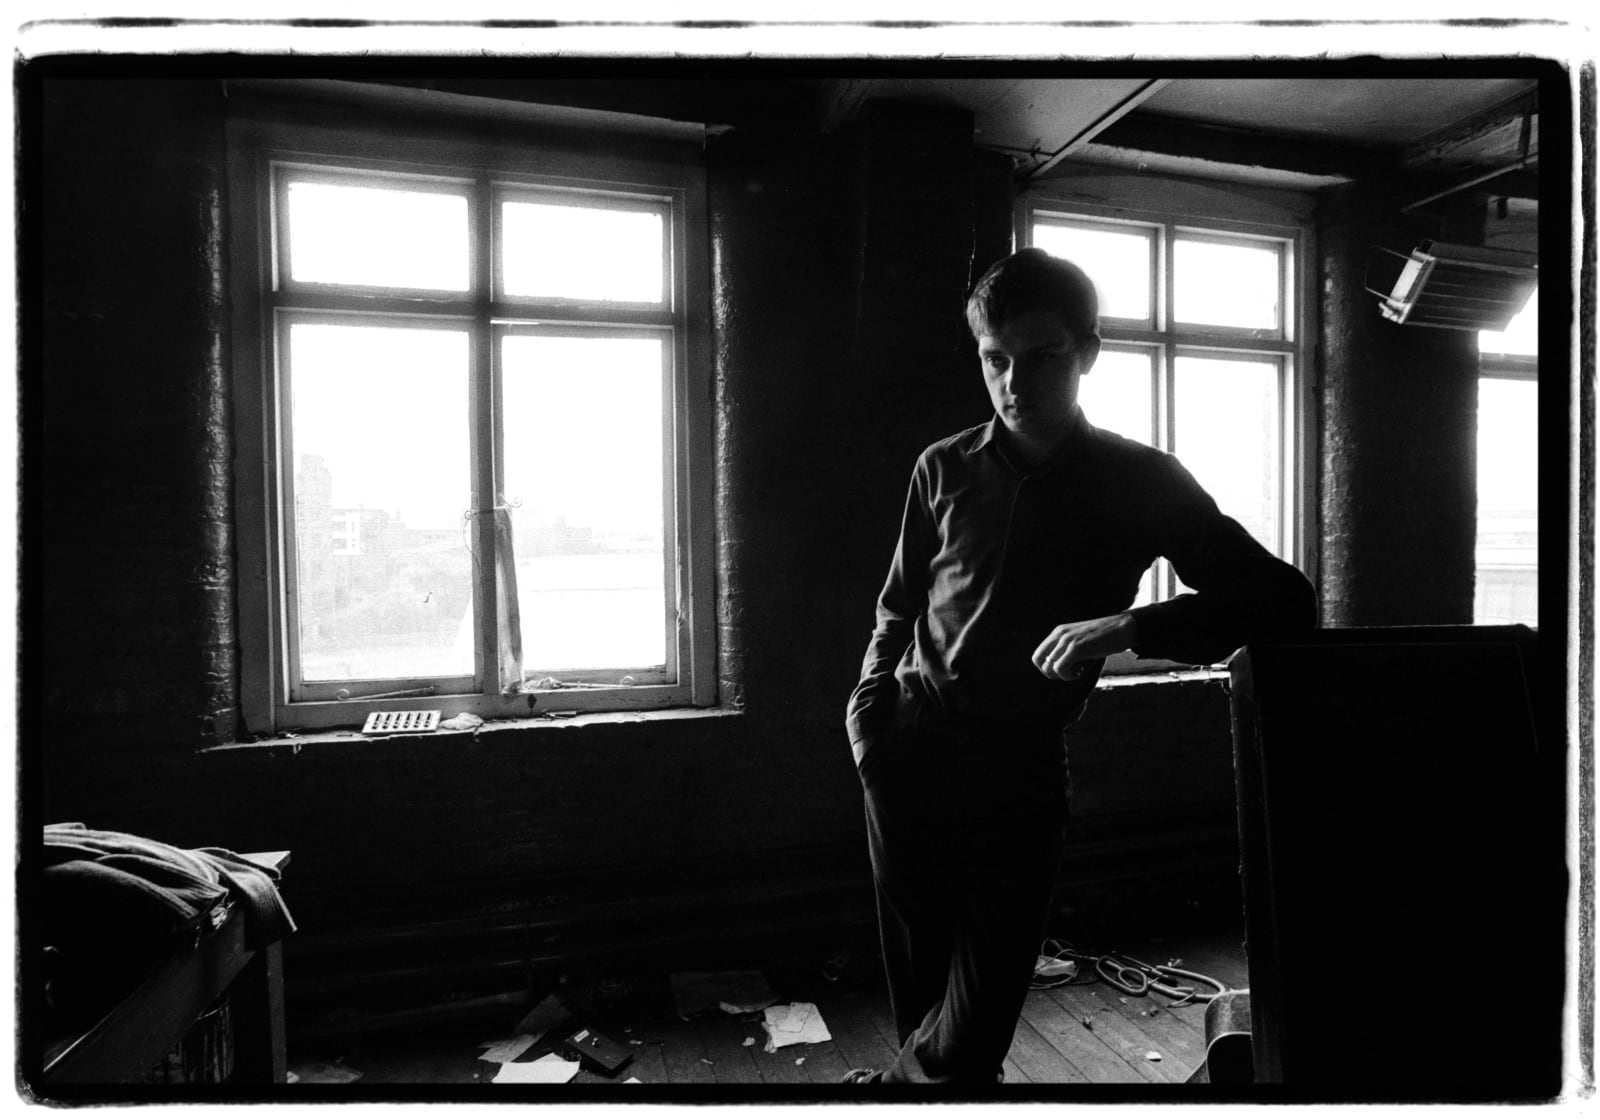 Kevin Cummins 2.Ian Curtis, Joy Division. TJ Davidson rehearsal room, Little Peter Street, Manchester, 19 August 1979., 2006 Gelatin silver print. Edition of 75 40.6 x 50.8 cm 16 x 20 in Edition of 75